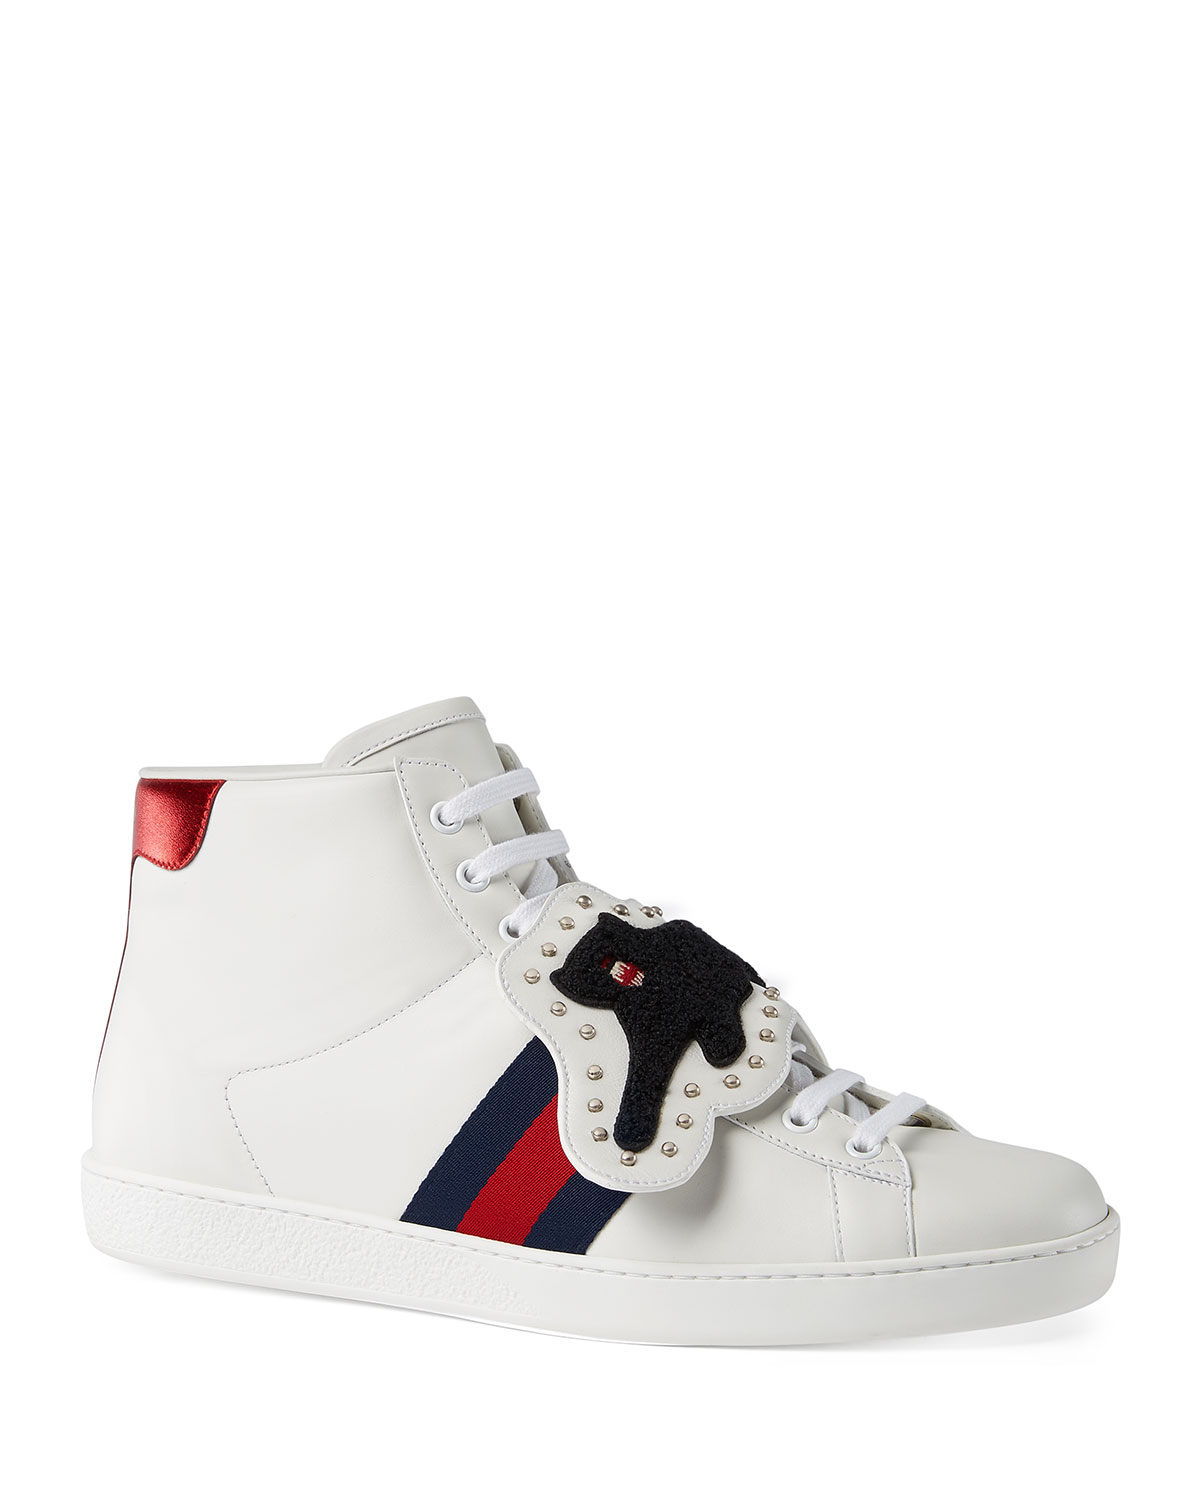 8fc07dab6dff Gucci Ace Sneaker with Removable Patches